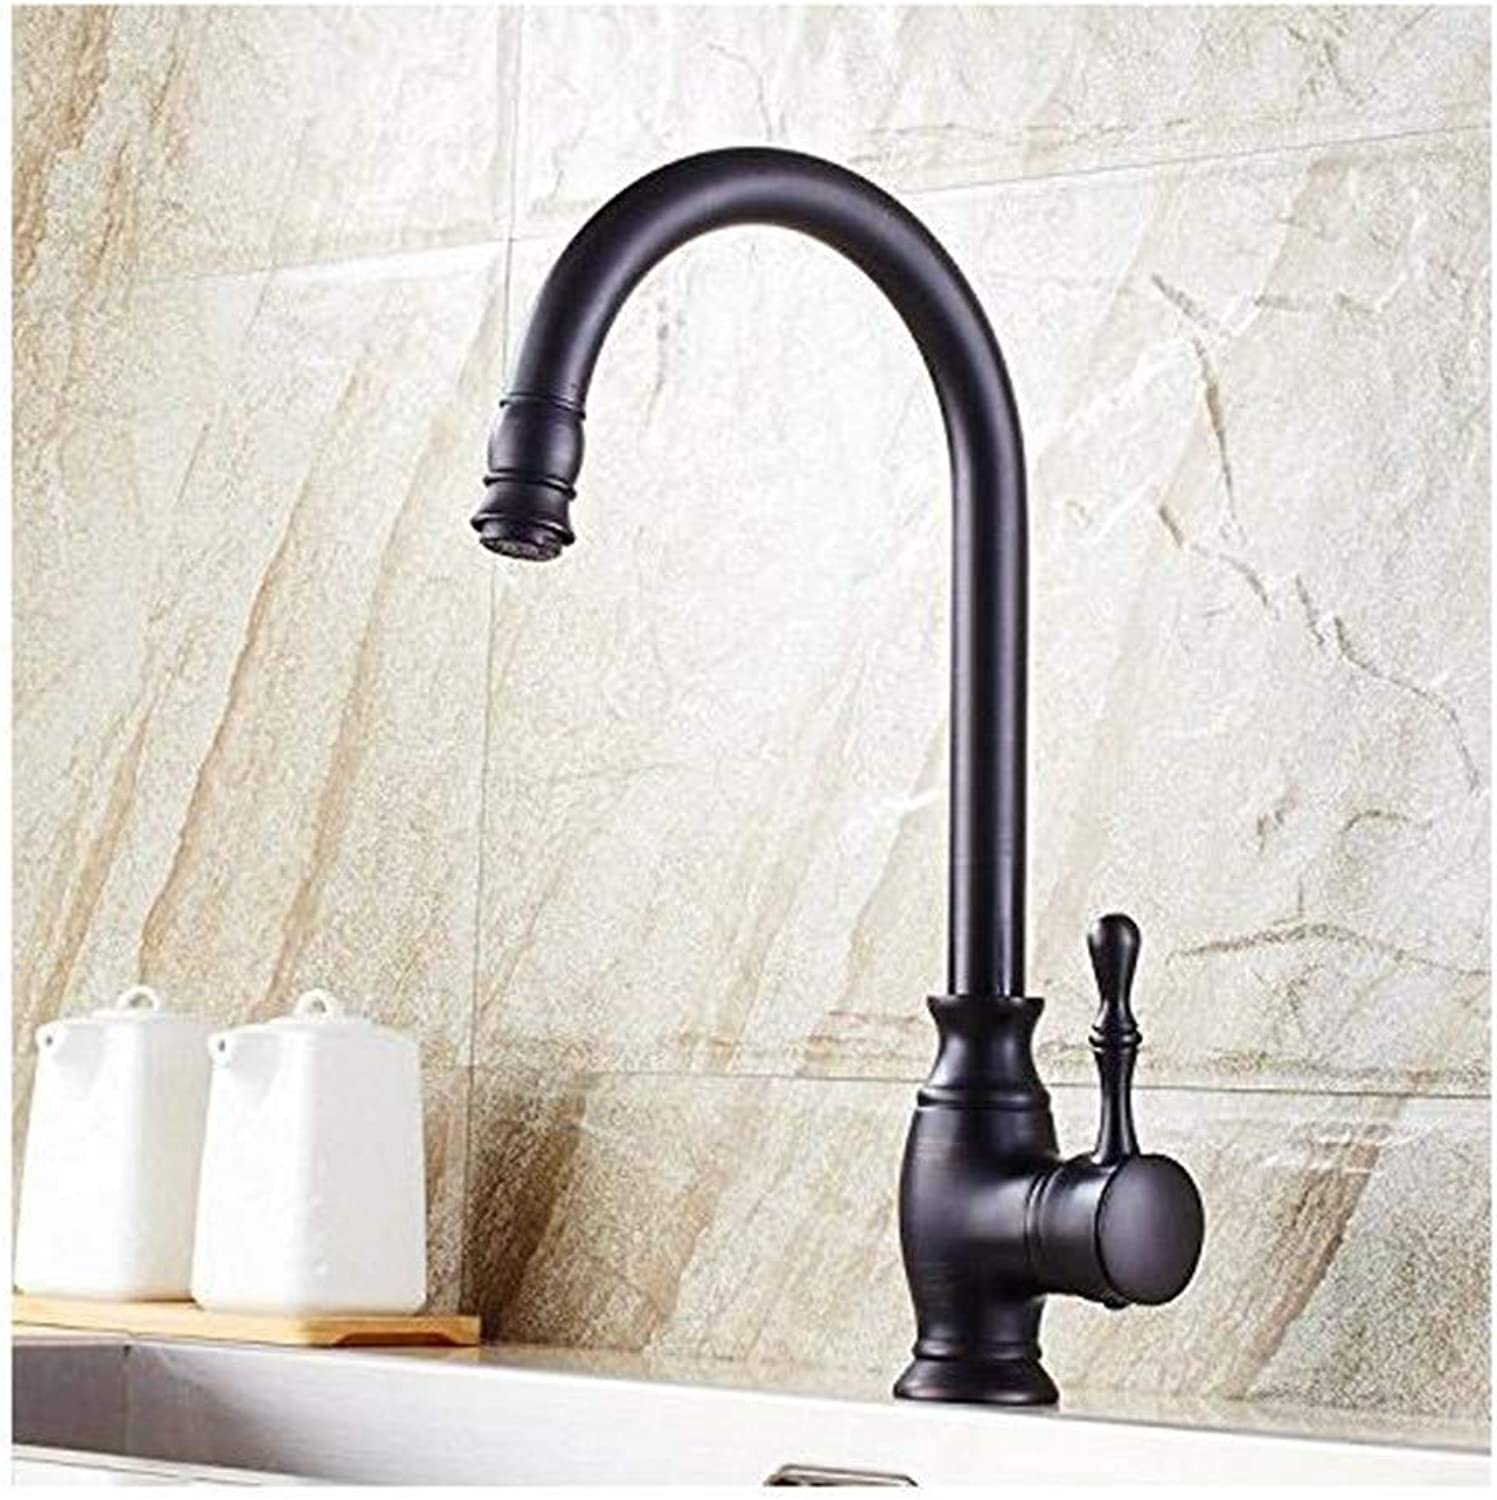 Faucet Modern Plated Mixing Faucet Antique Kitchen Kitchen ...